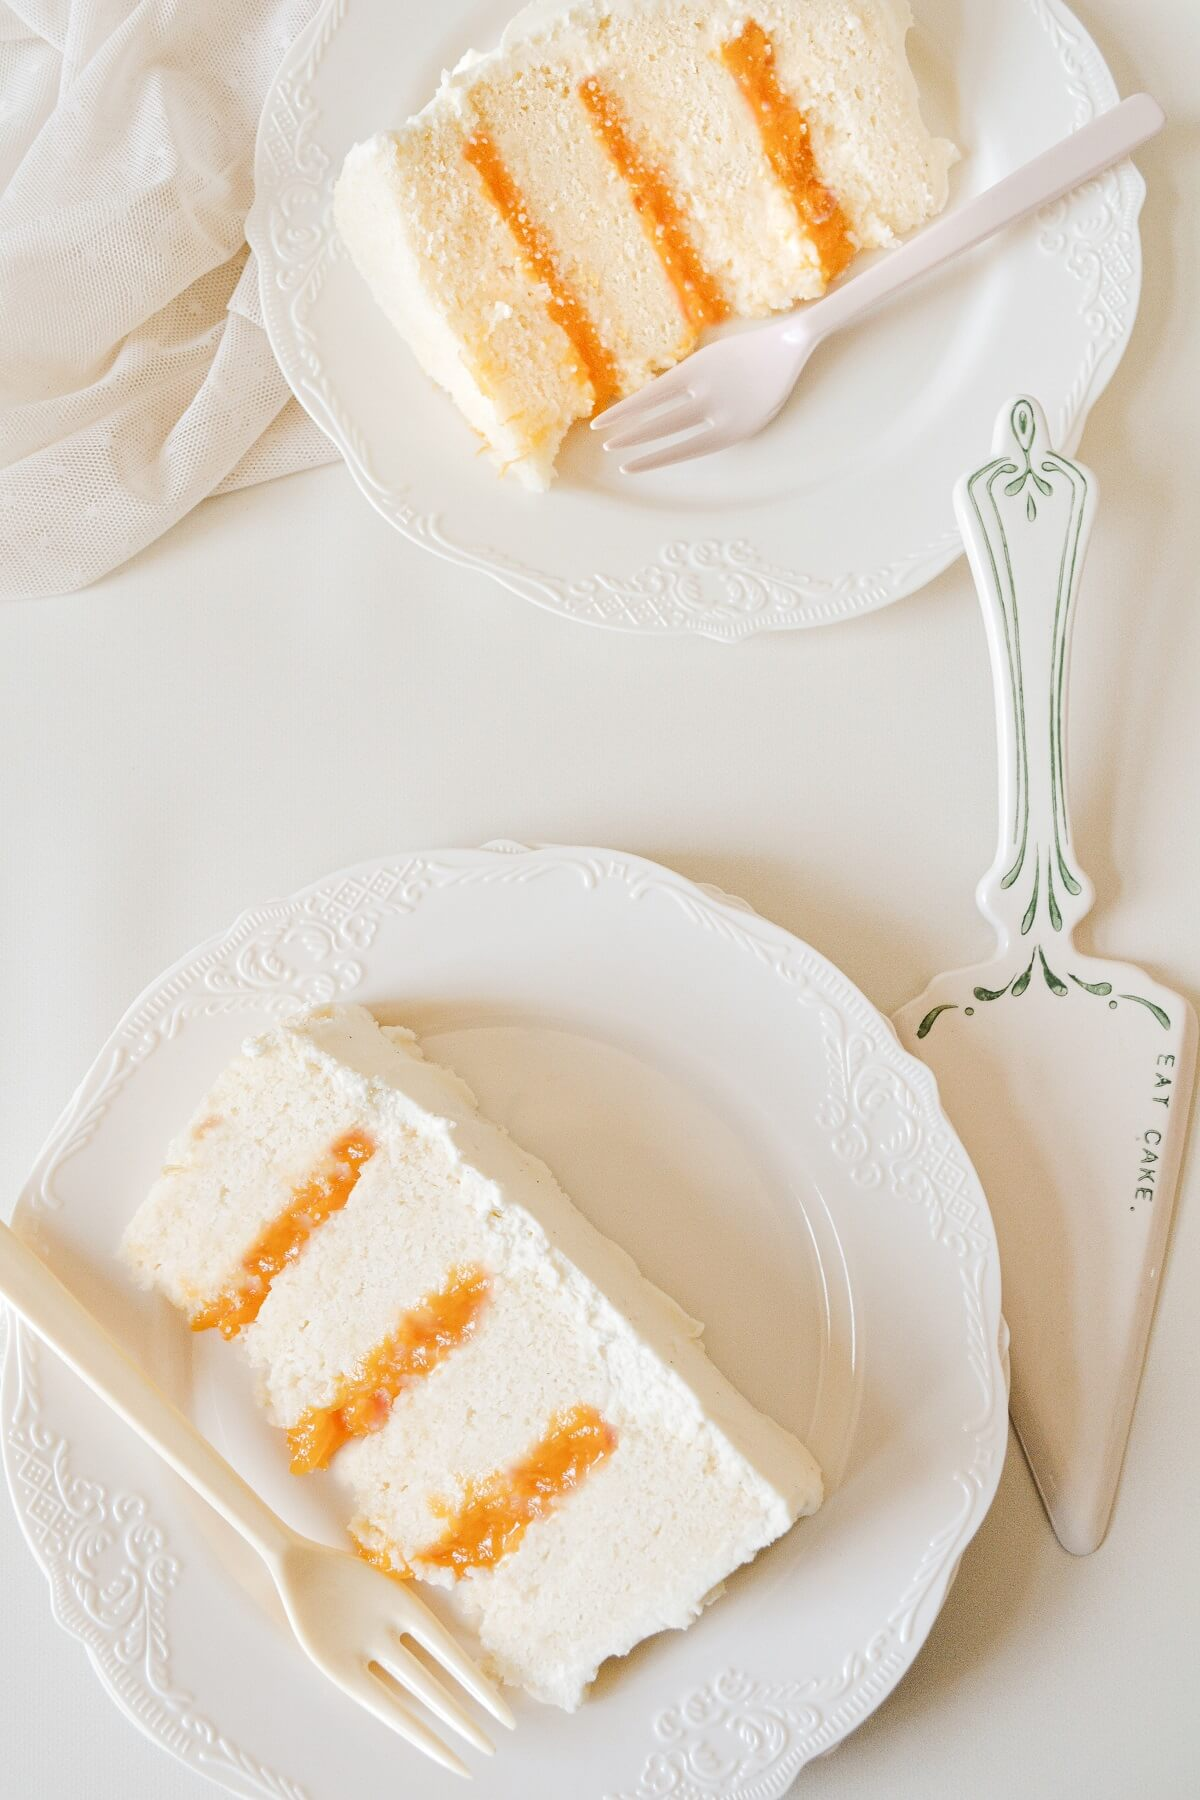 Slices of peaches and cream cake on white plates.